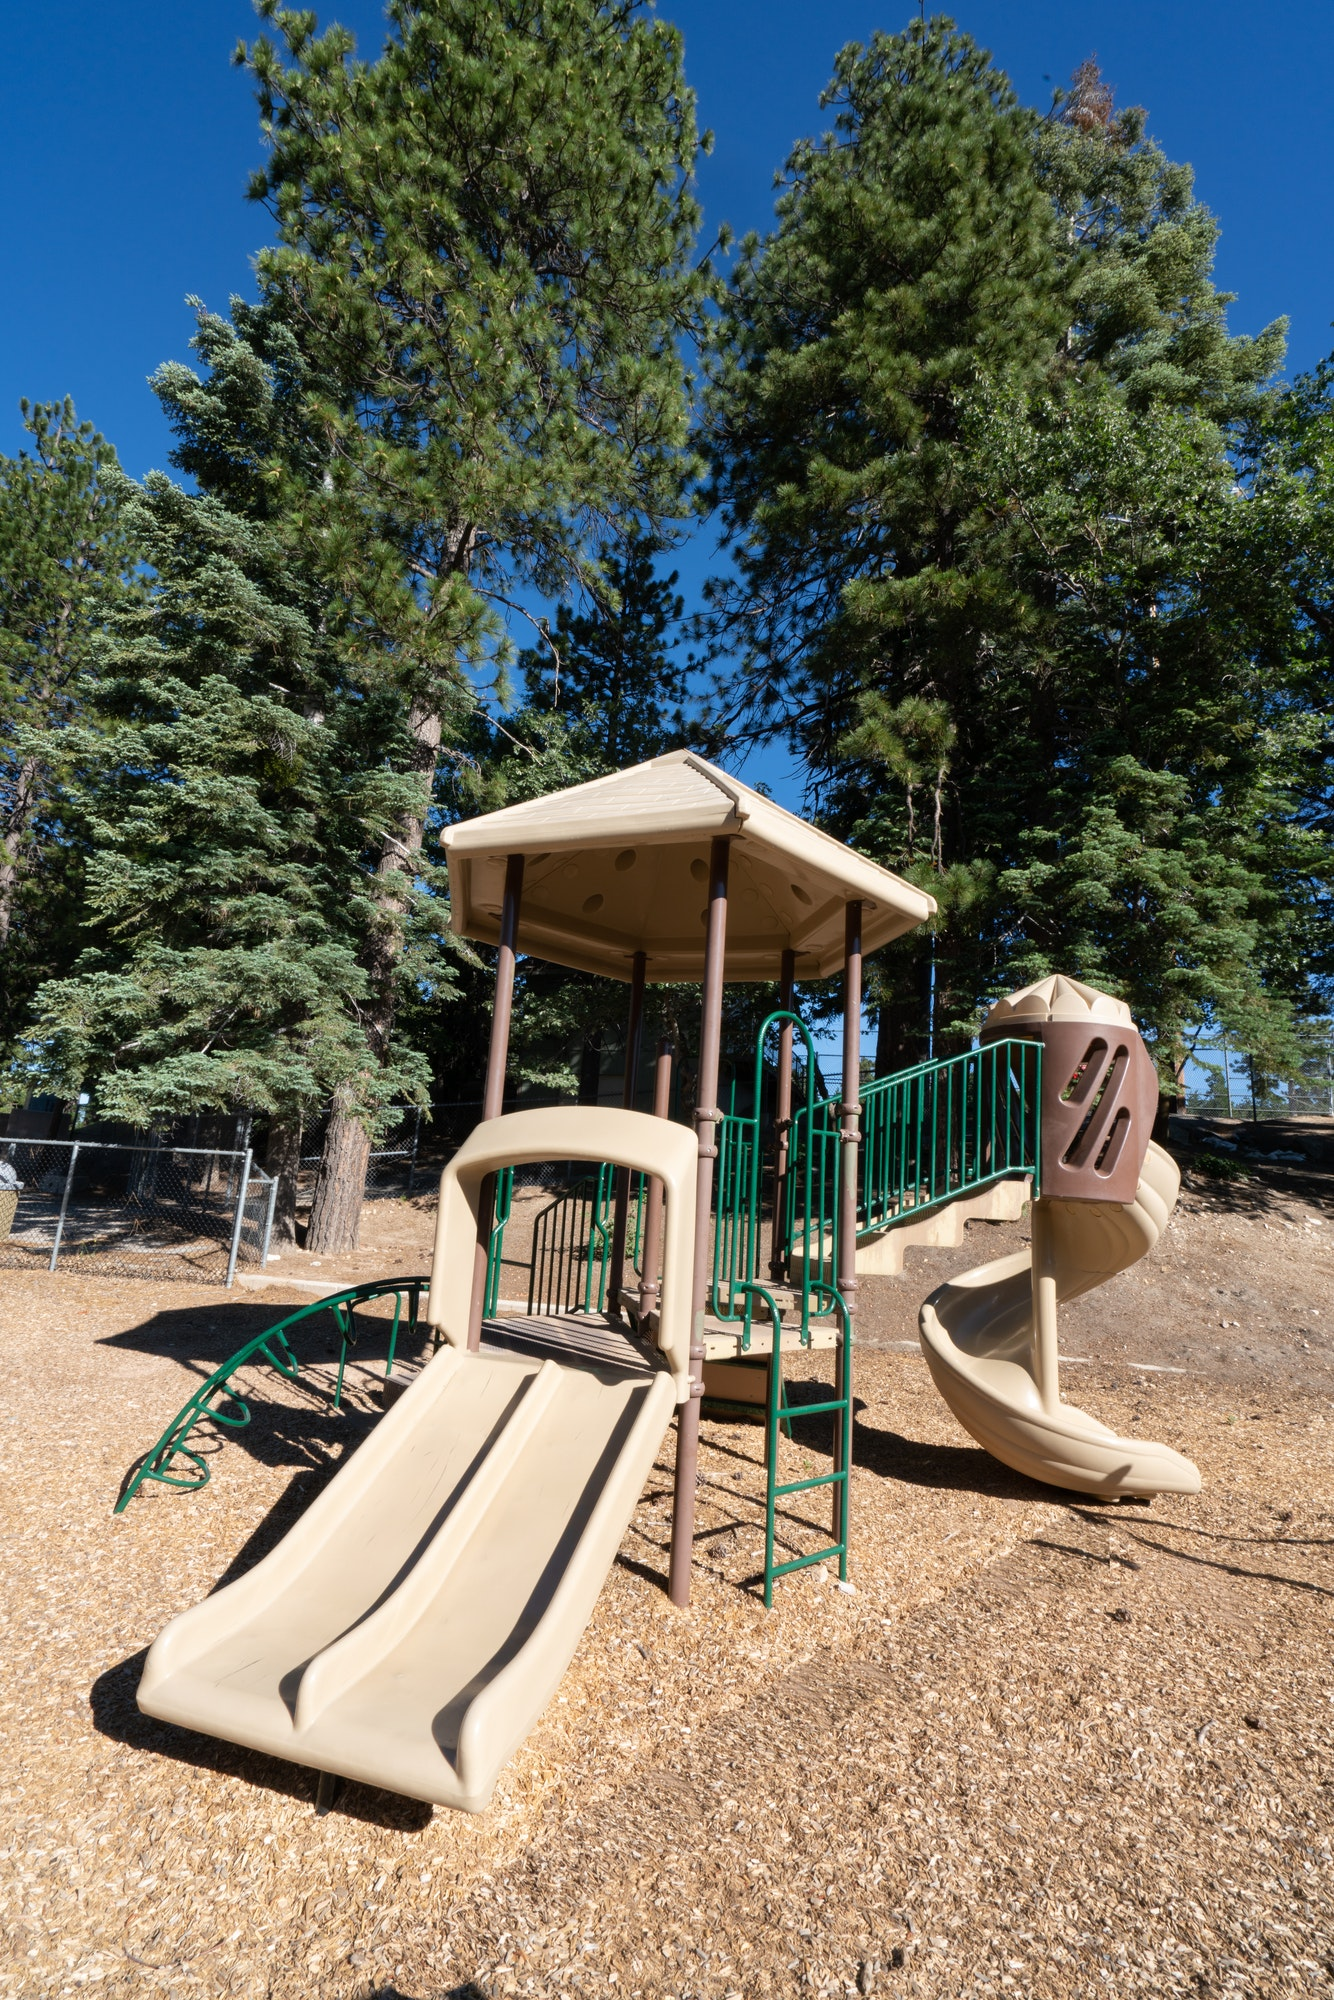 Twin Peaks playground and play area